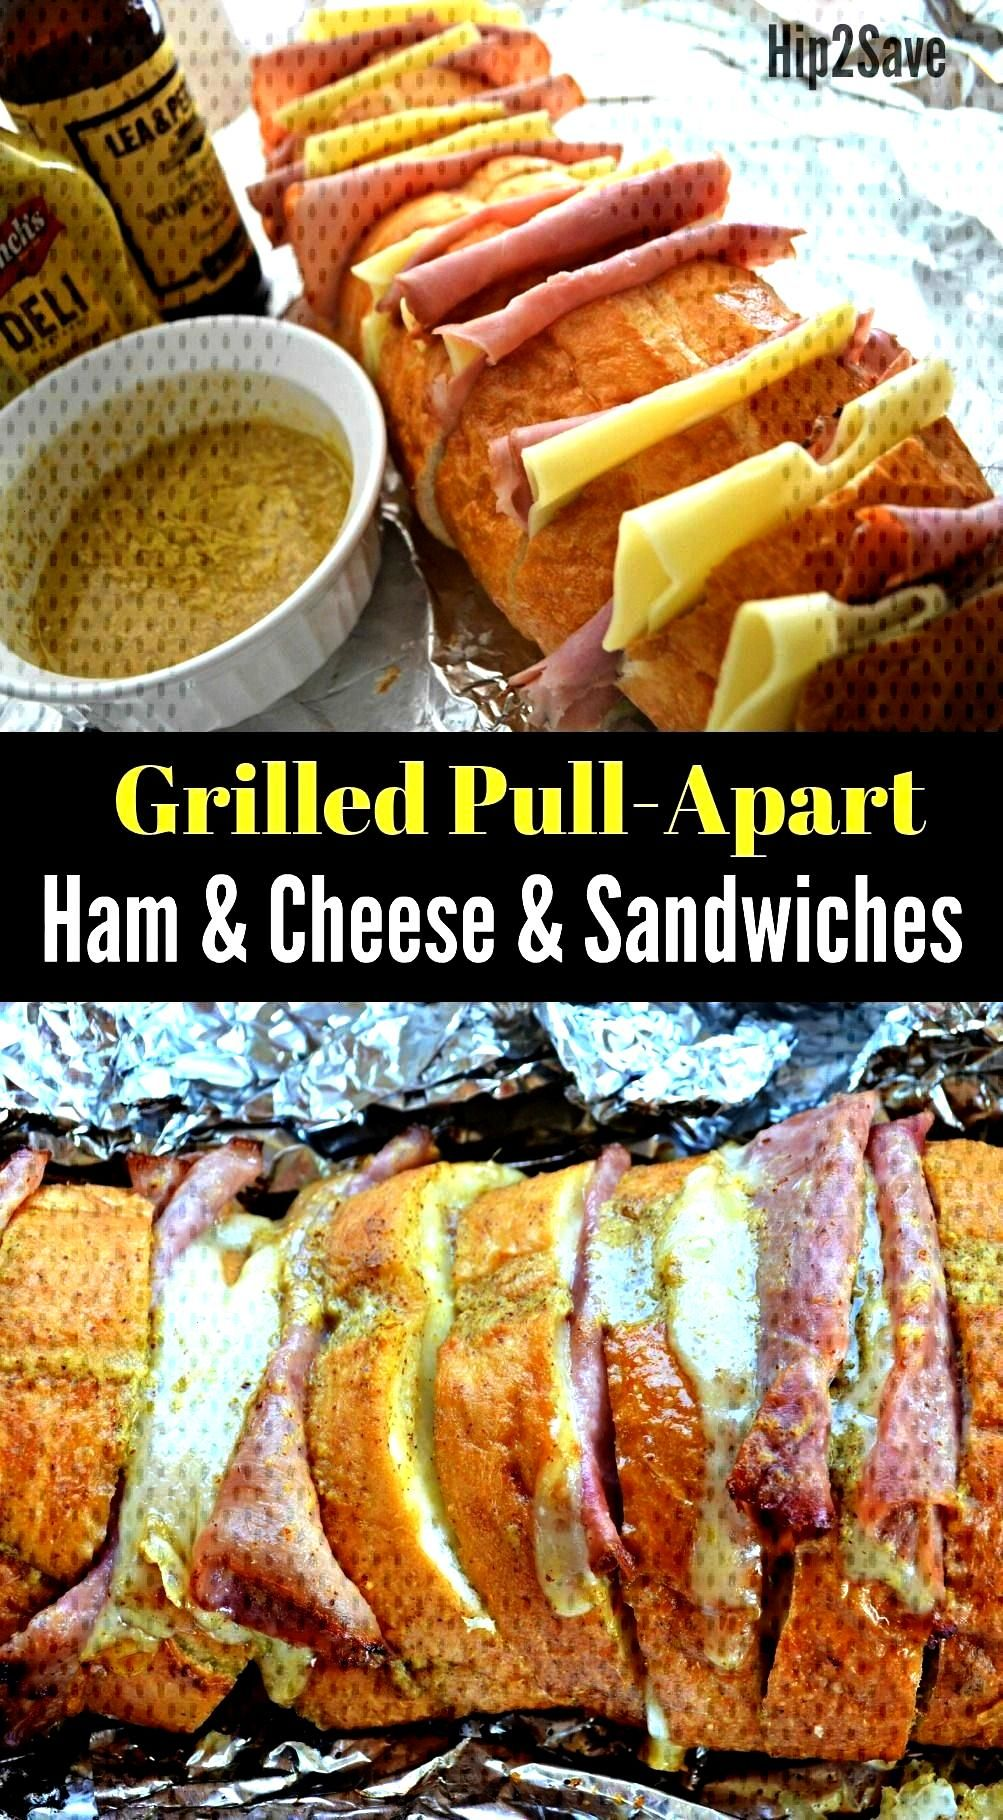 Ham and Cheese Pull-Apart Sandwiches (Fun Camping Meal Idea) - Hip2Save - If you love ham and chee